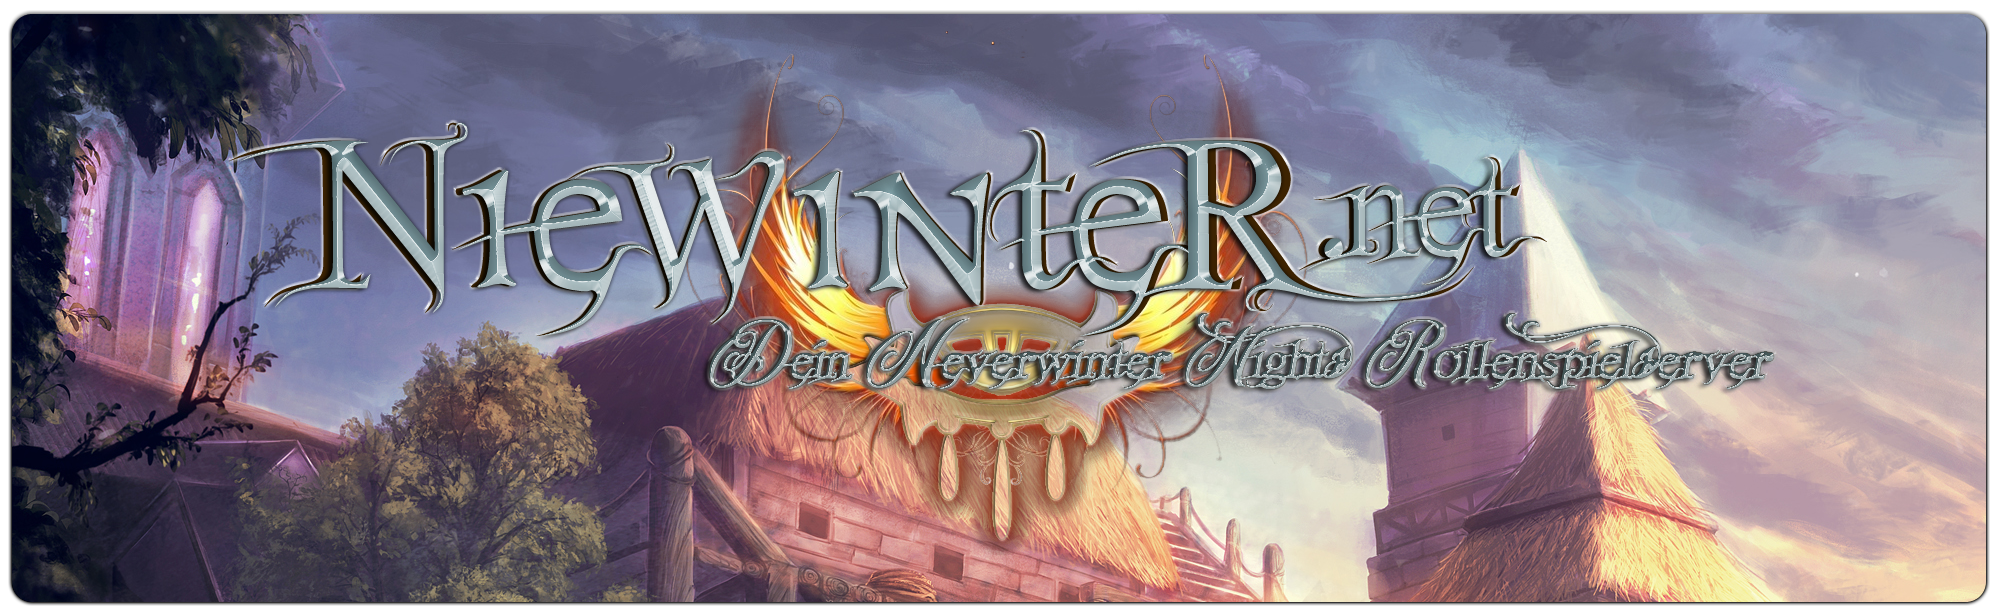 neverwinter_banner_klein.png